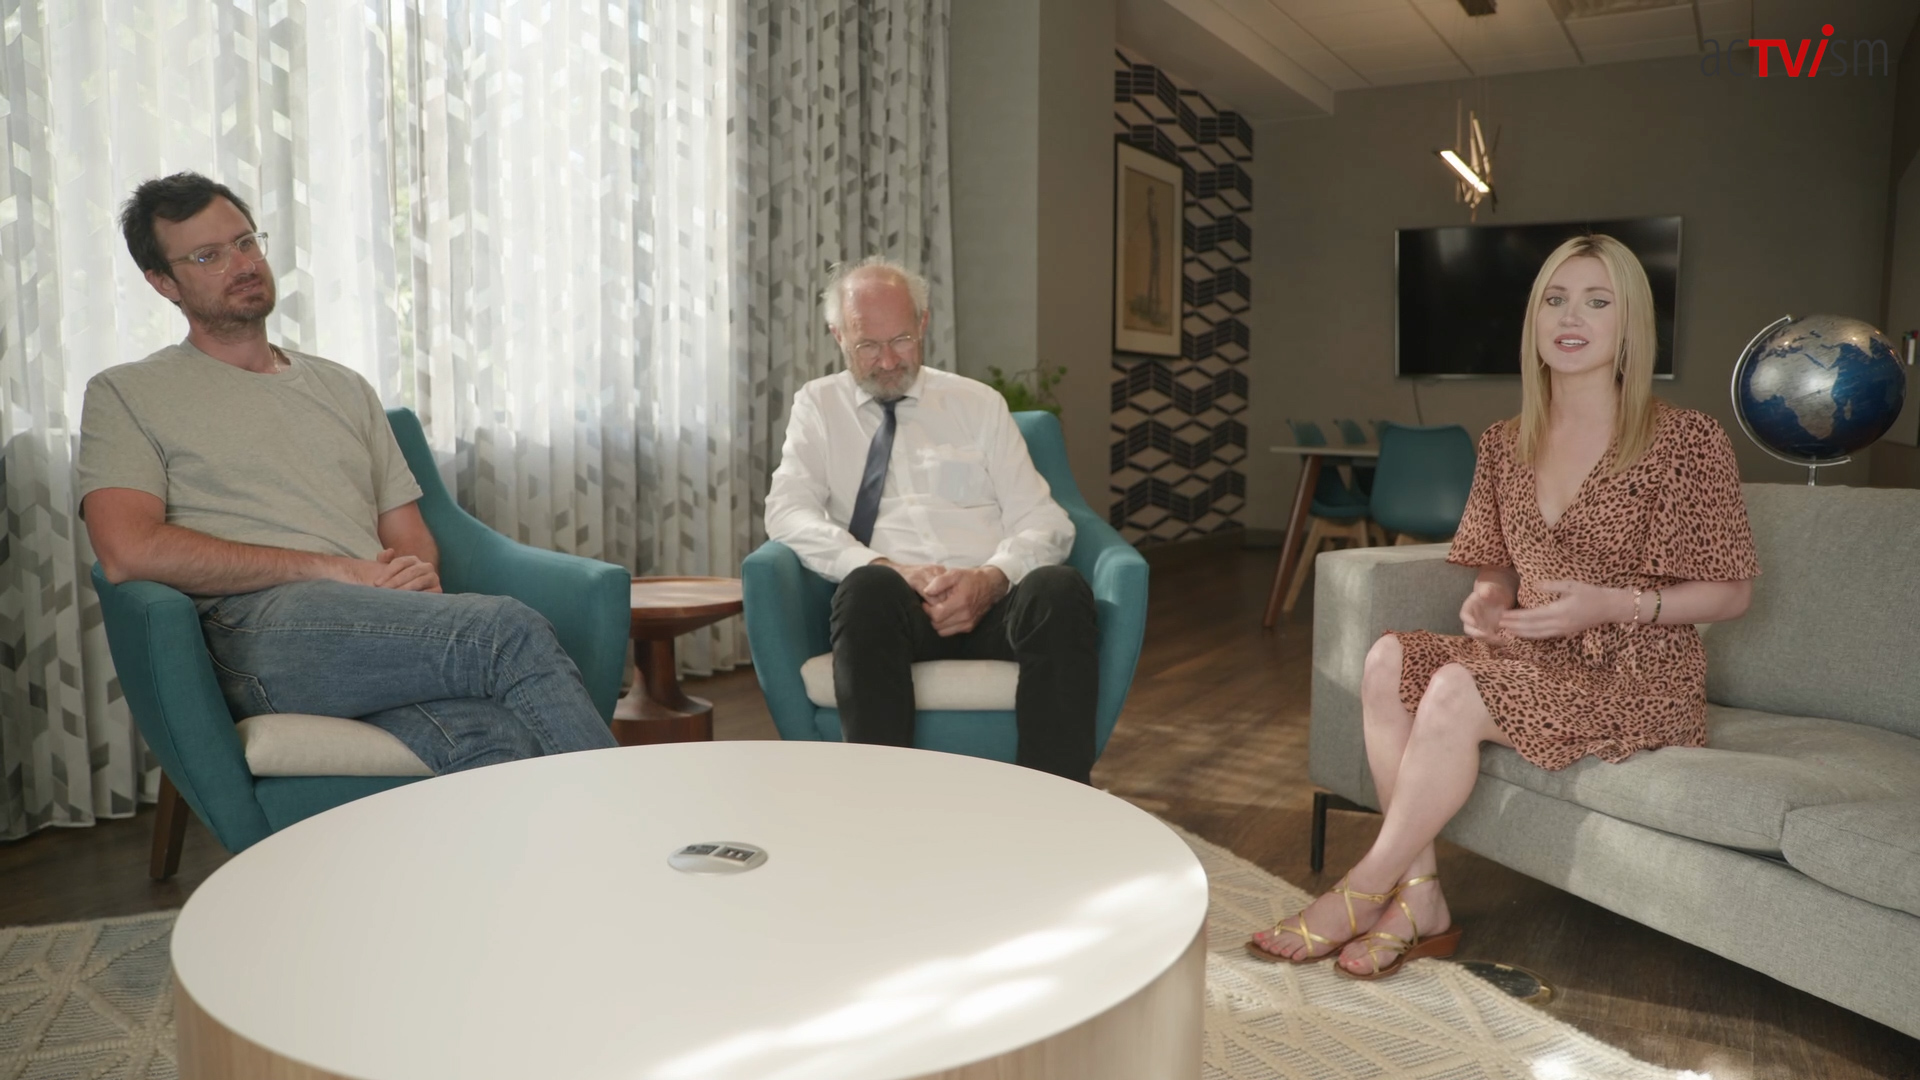 EXCLUSIVE: Julian Assange's Father and Brother Interview